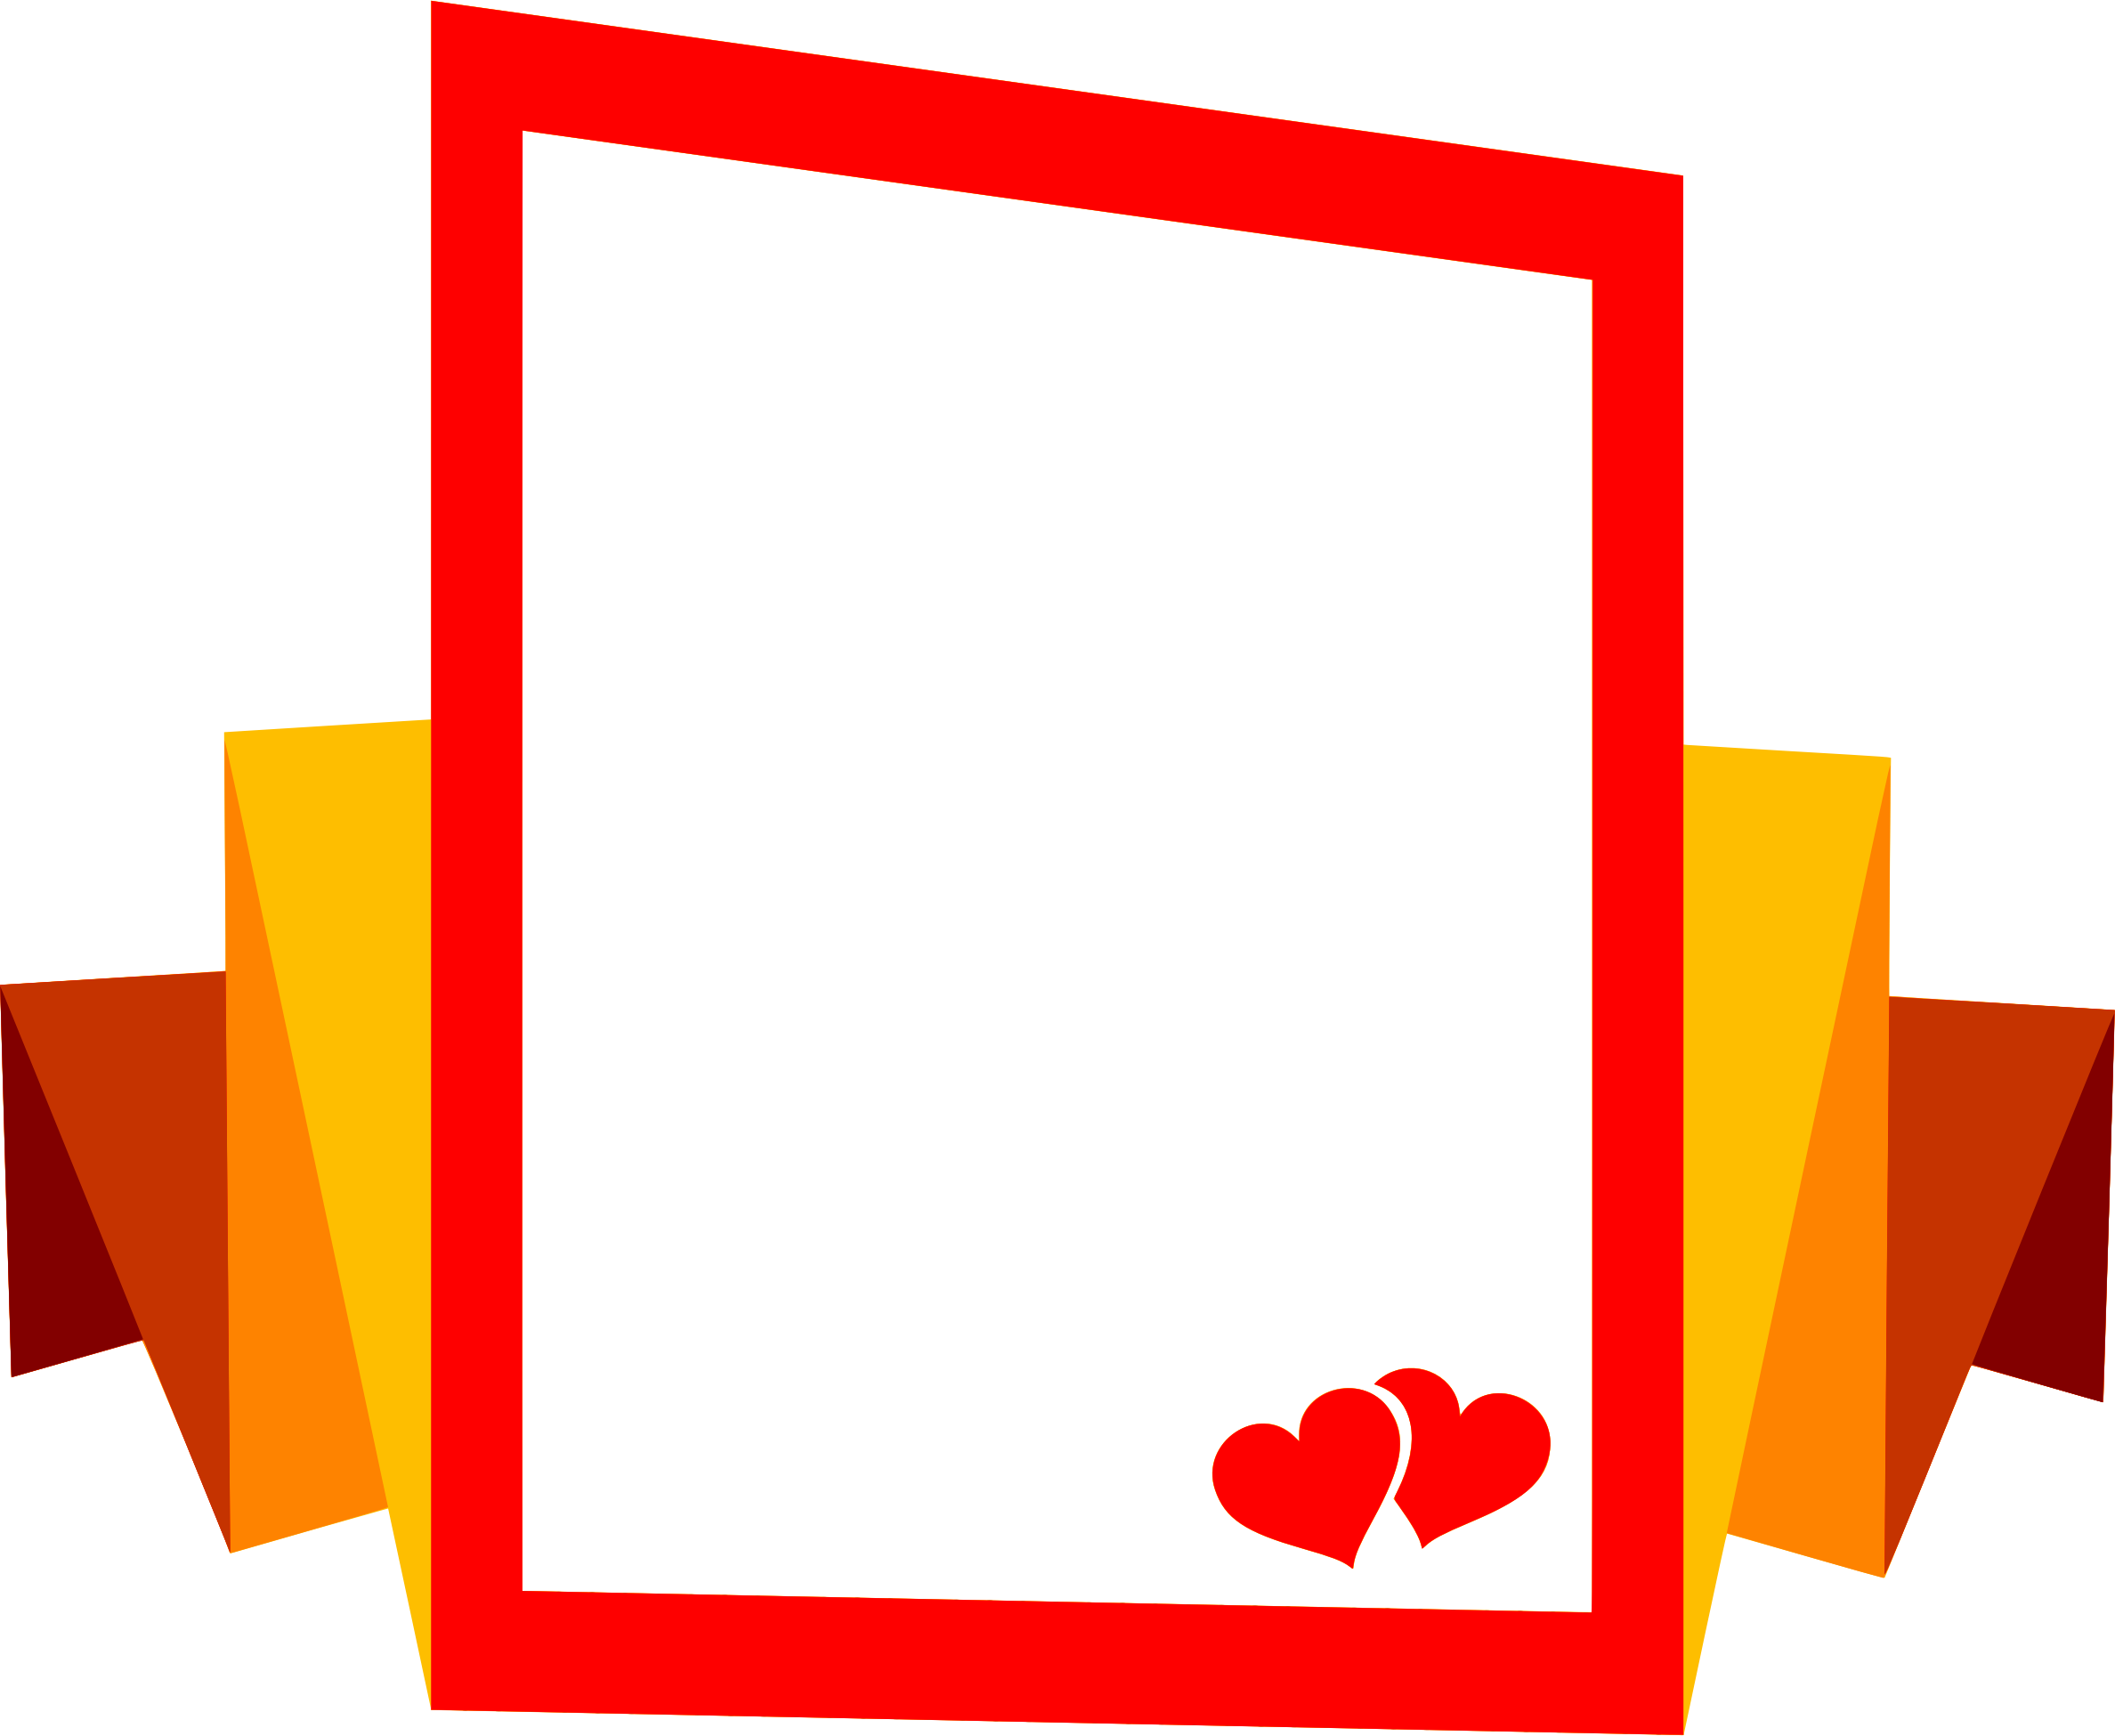 Heart frame 11 by Firkin